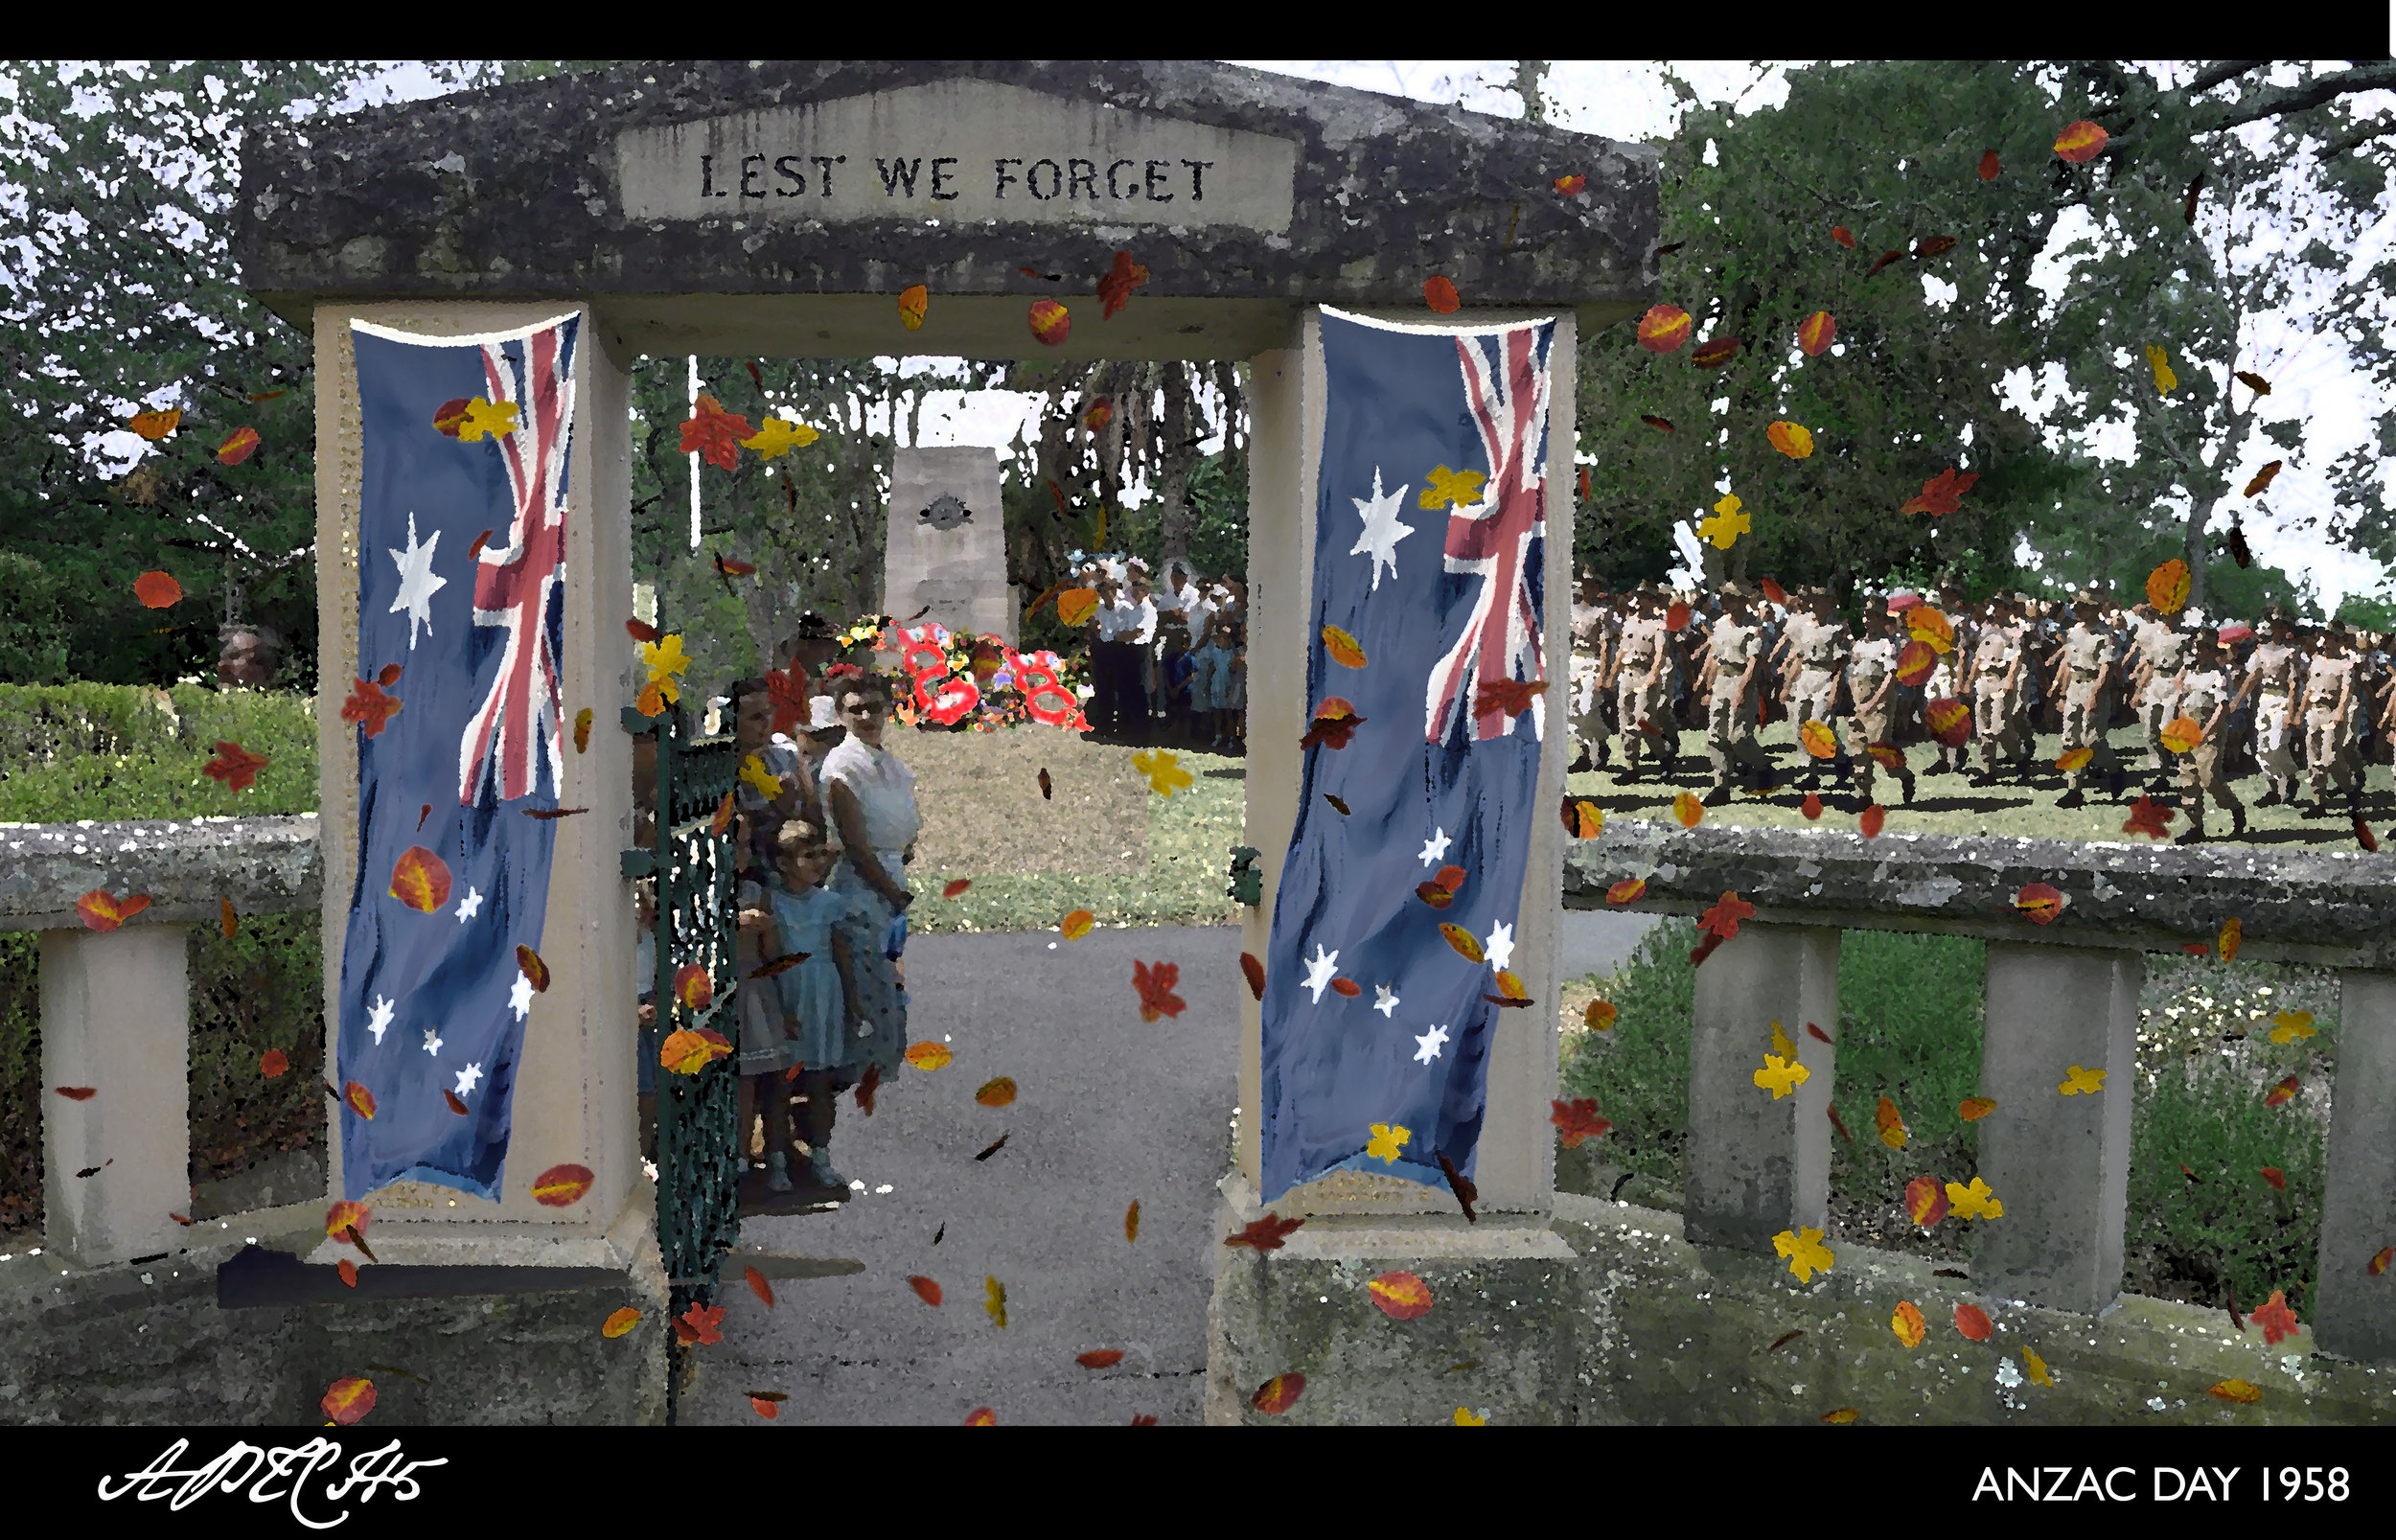 ANZAC DAY WITH FLAGS.jpg